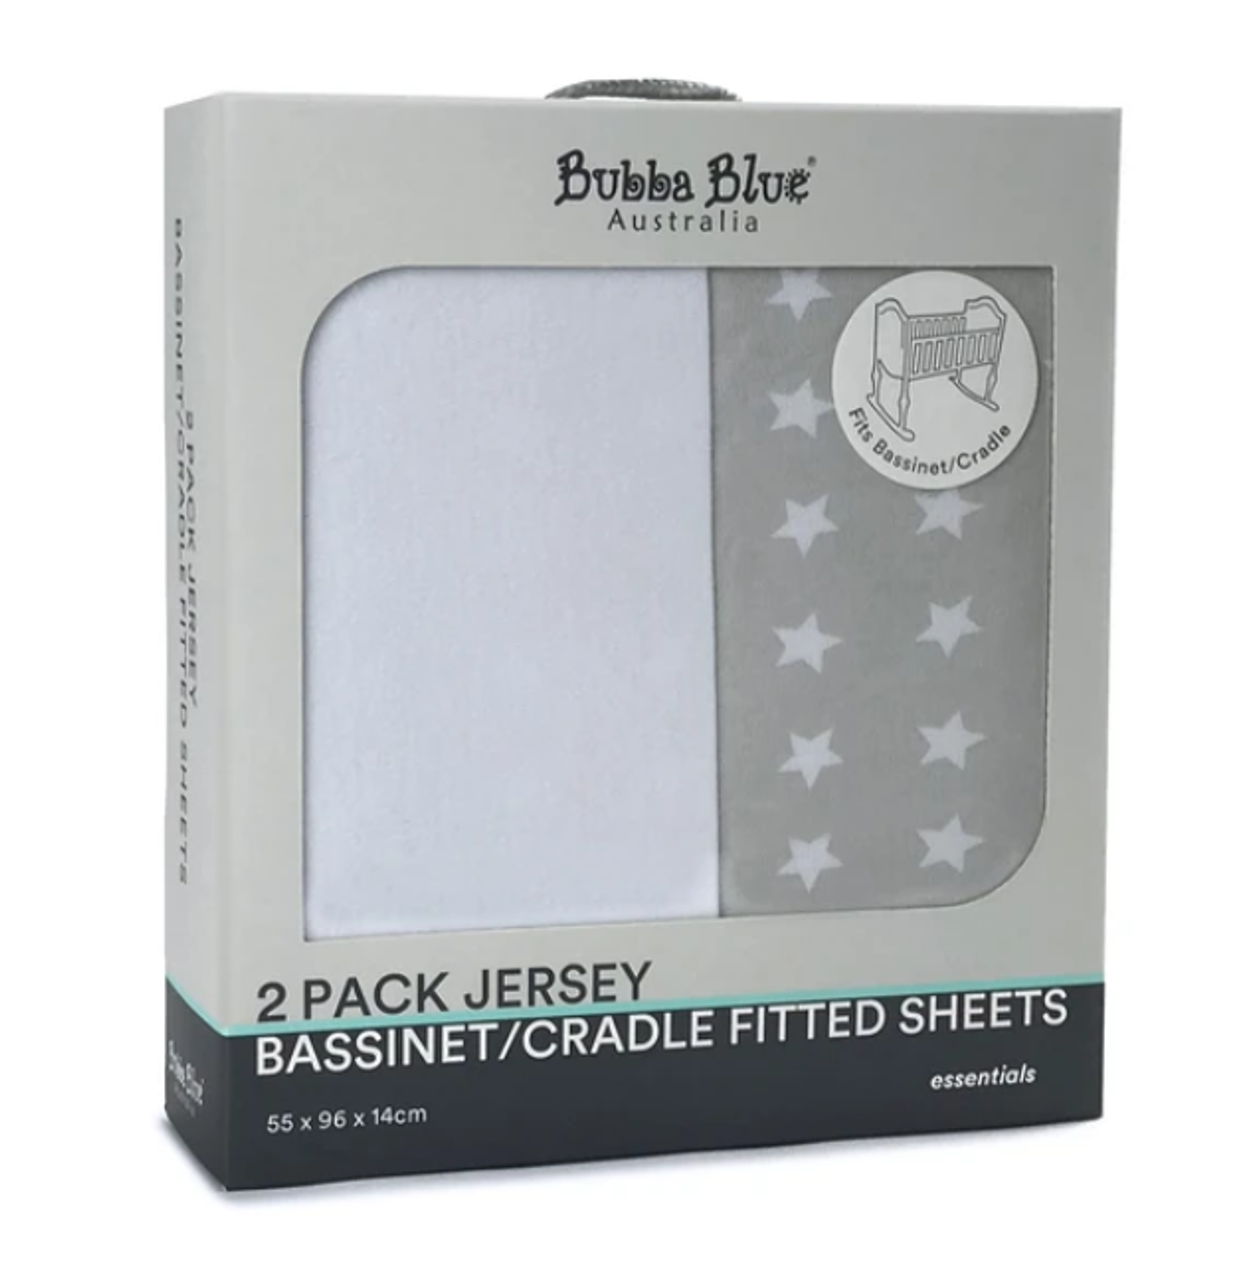 Bubba Blue Jersey Bassinet/Cradle Fitted Sheet 2pk at Baby Barn Discounts Bubba Blue Essential two pack of soft cotton Jersey Bassinet/Cradle Fitted Sheets.